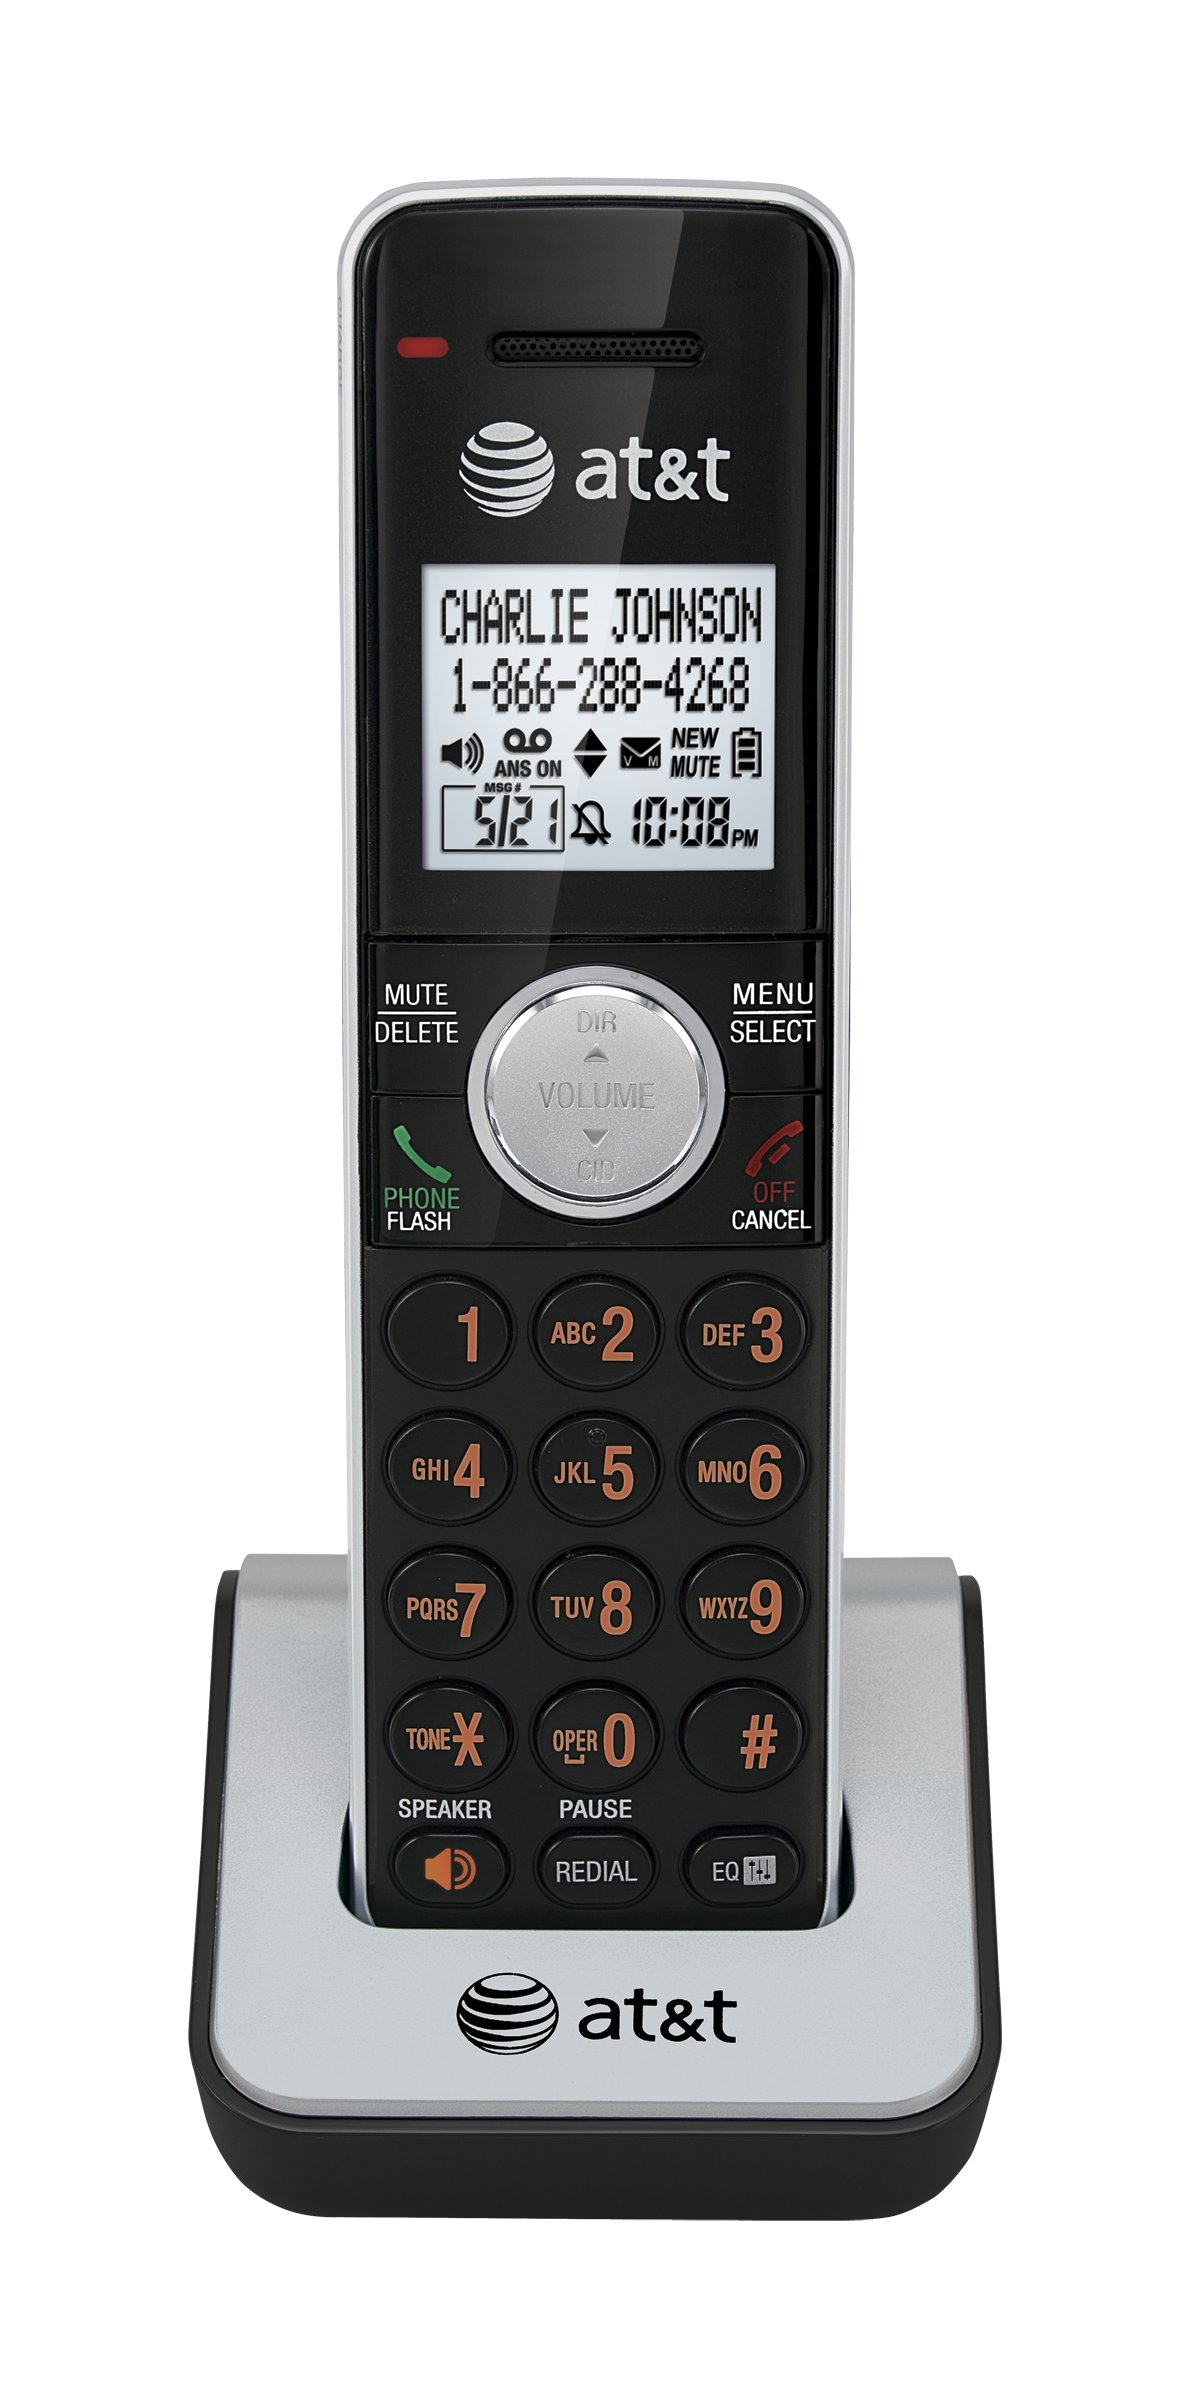 AT&T CL80111 DECT 6.0 Cordless Accessory Handset Phone, Black/Silver, 1  Accessory Handset OPEN BOX TESTED WORKS COMES ORIGINAL BOX AND MANUAL